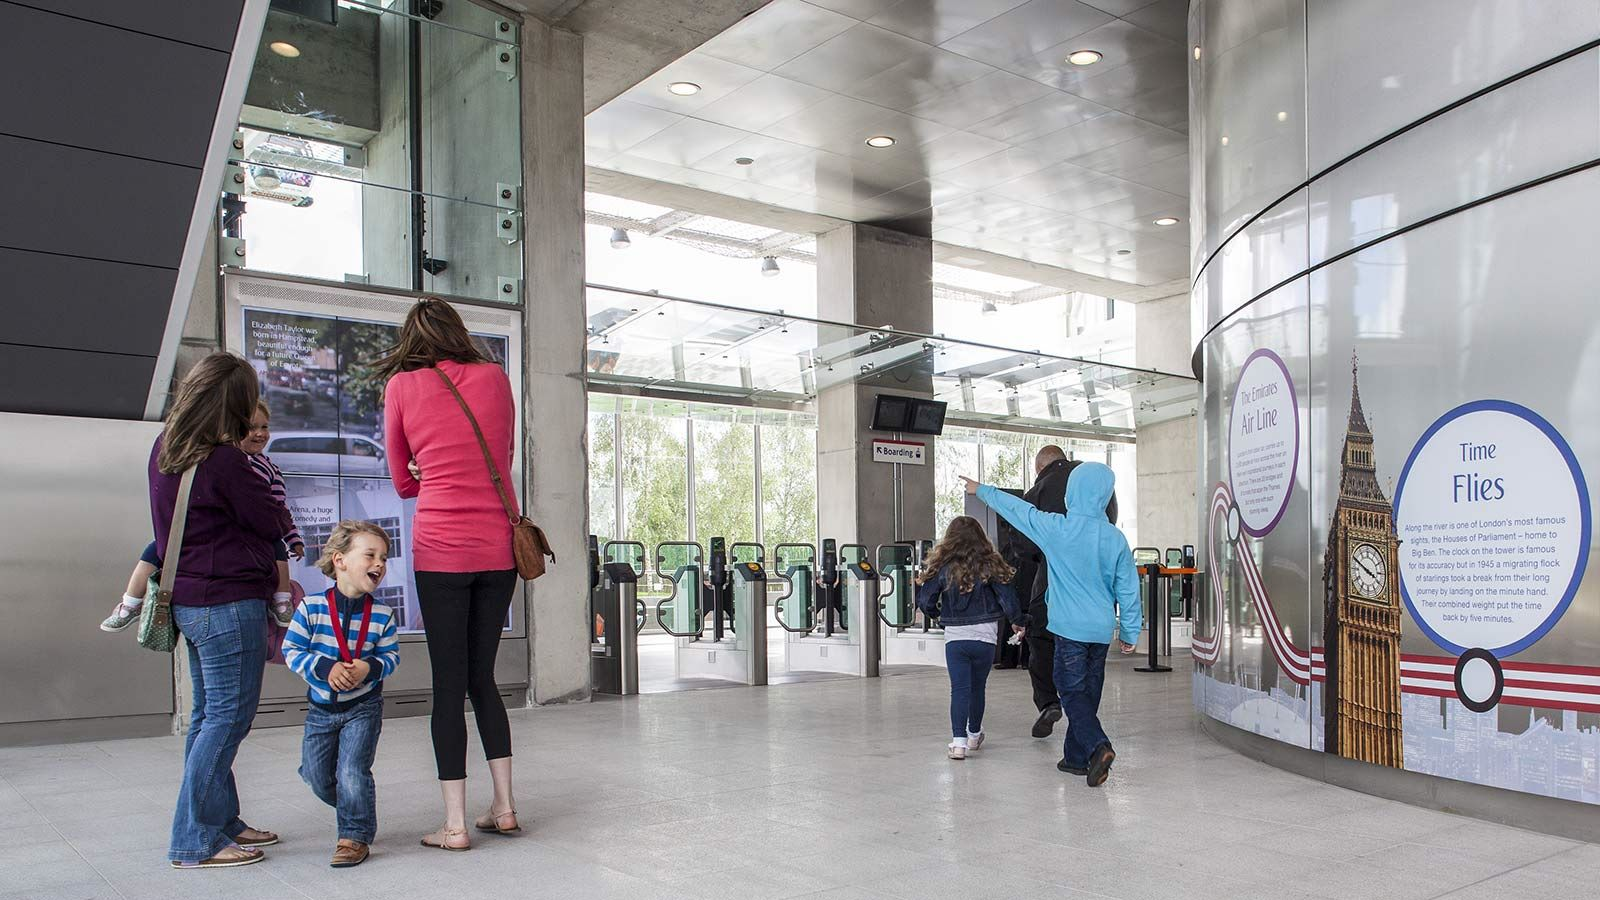 Inside Emirates Air Line Station - Mace Group